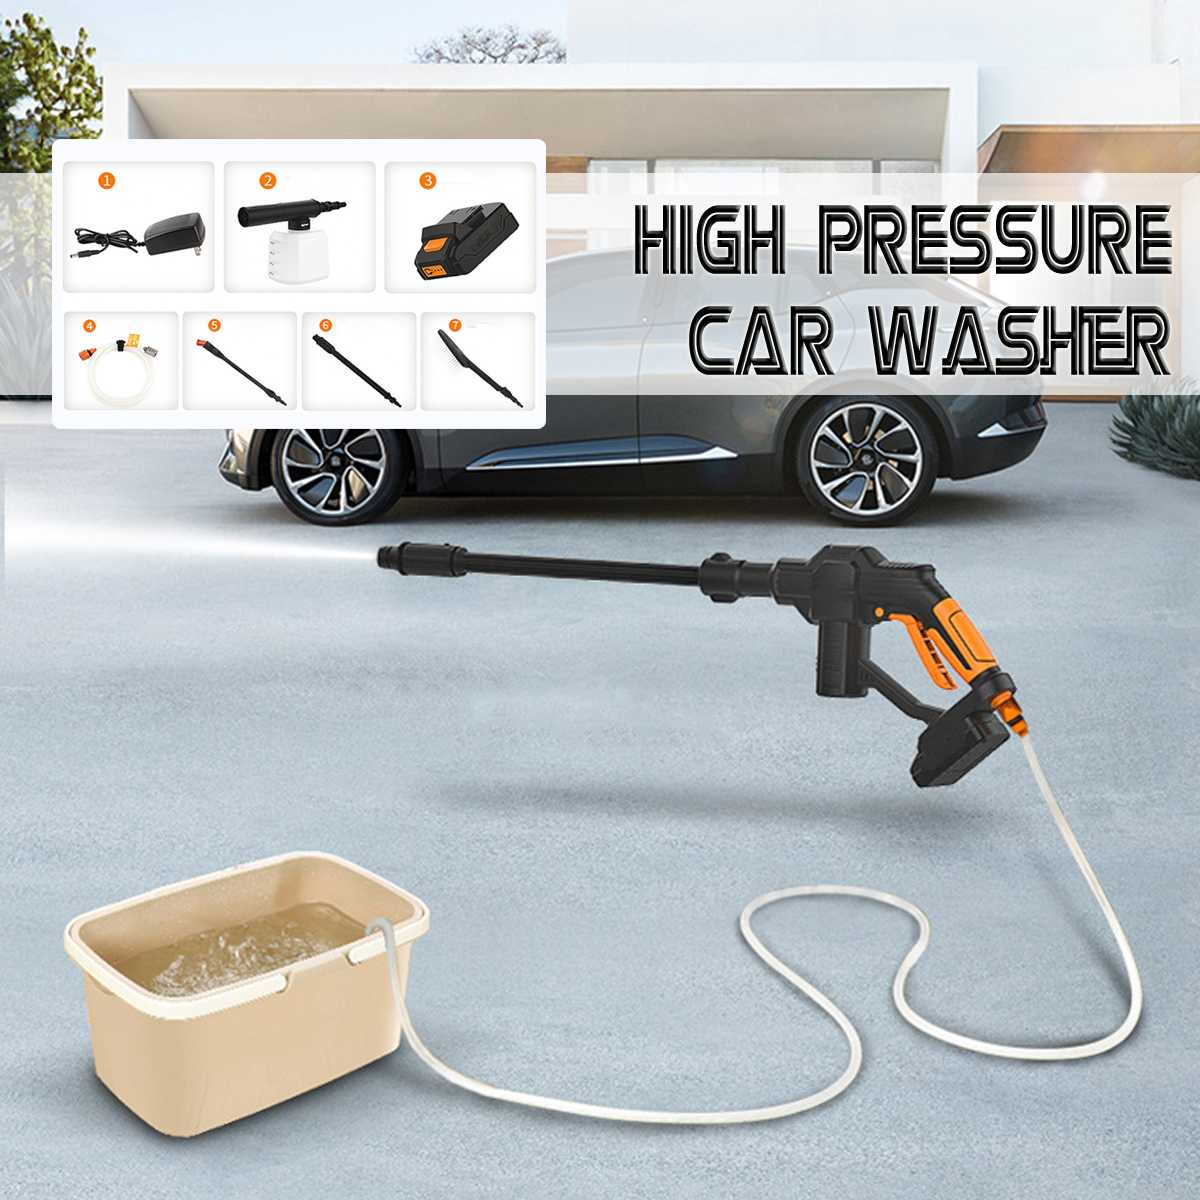 20V Car Wash Guns Wireless High Pressure Auto Spray Water Washer Rechargeable Car Washer Handheld Garden Electric Cleaning Tool